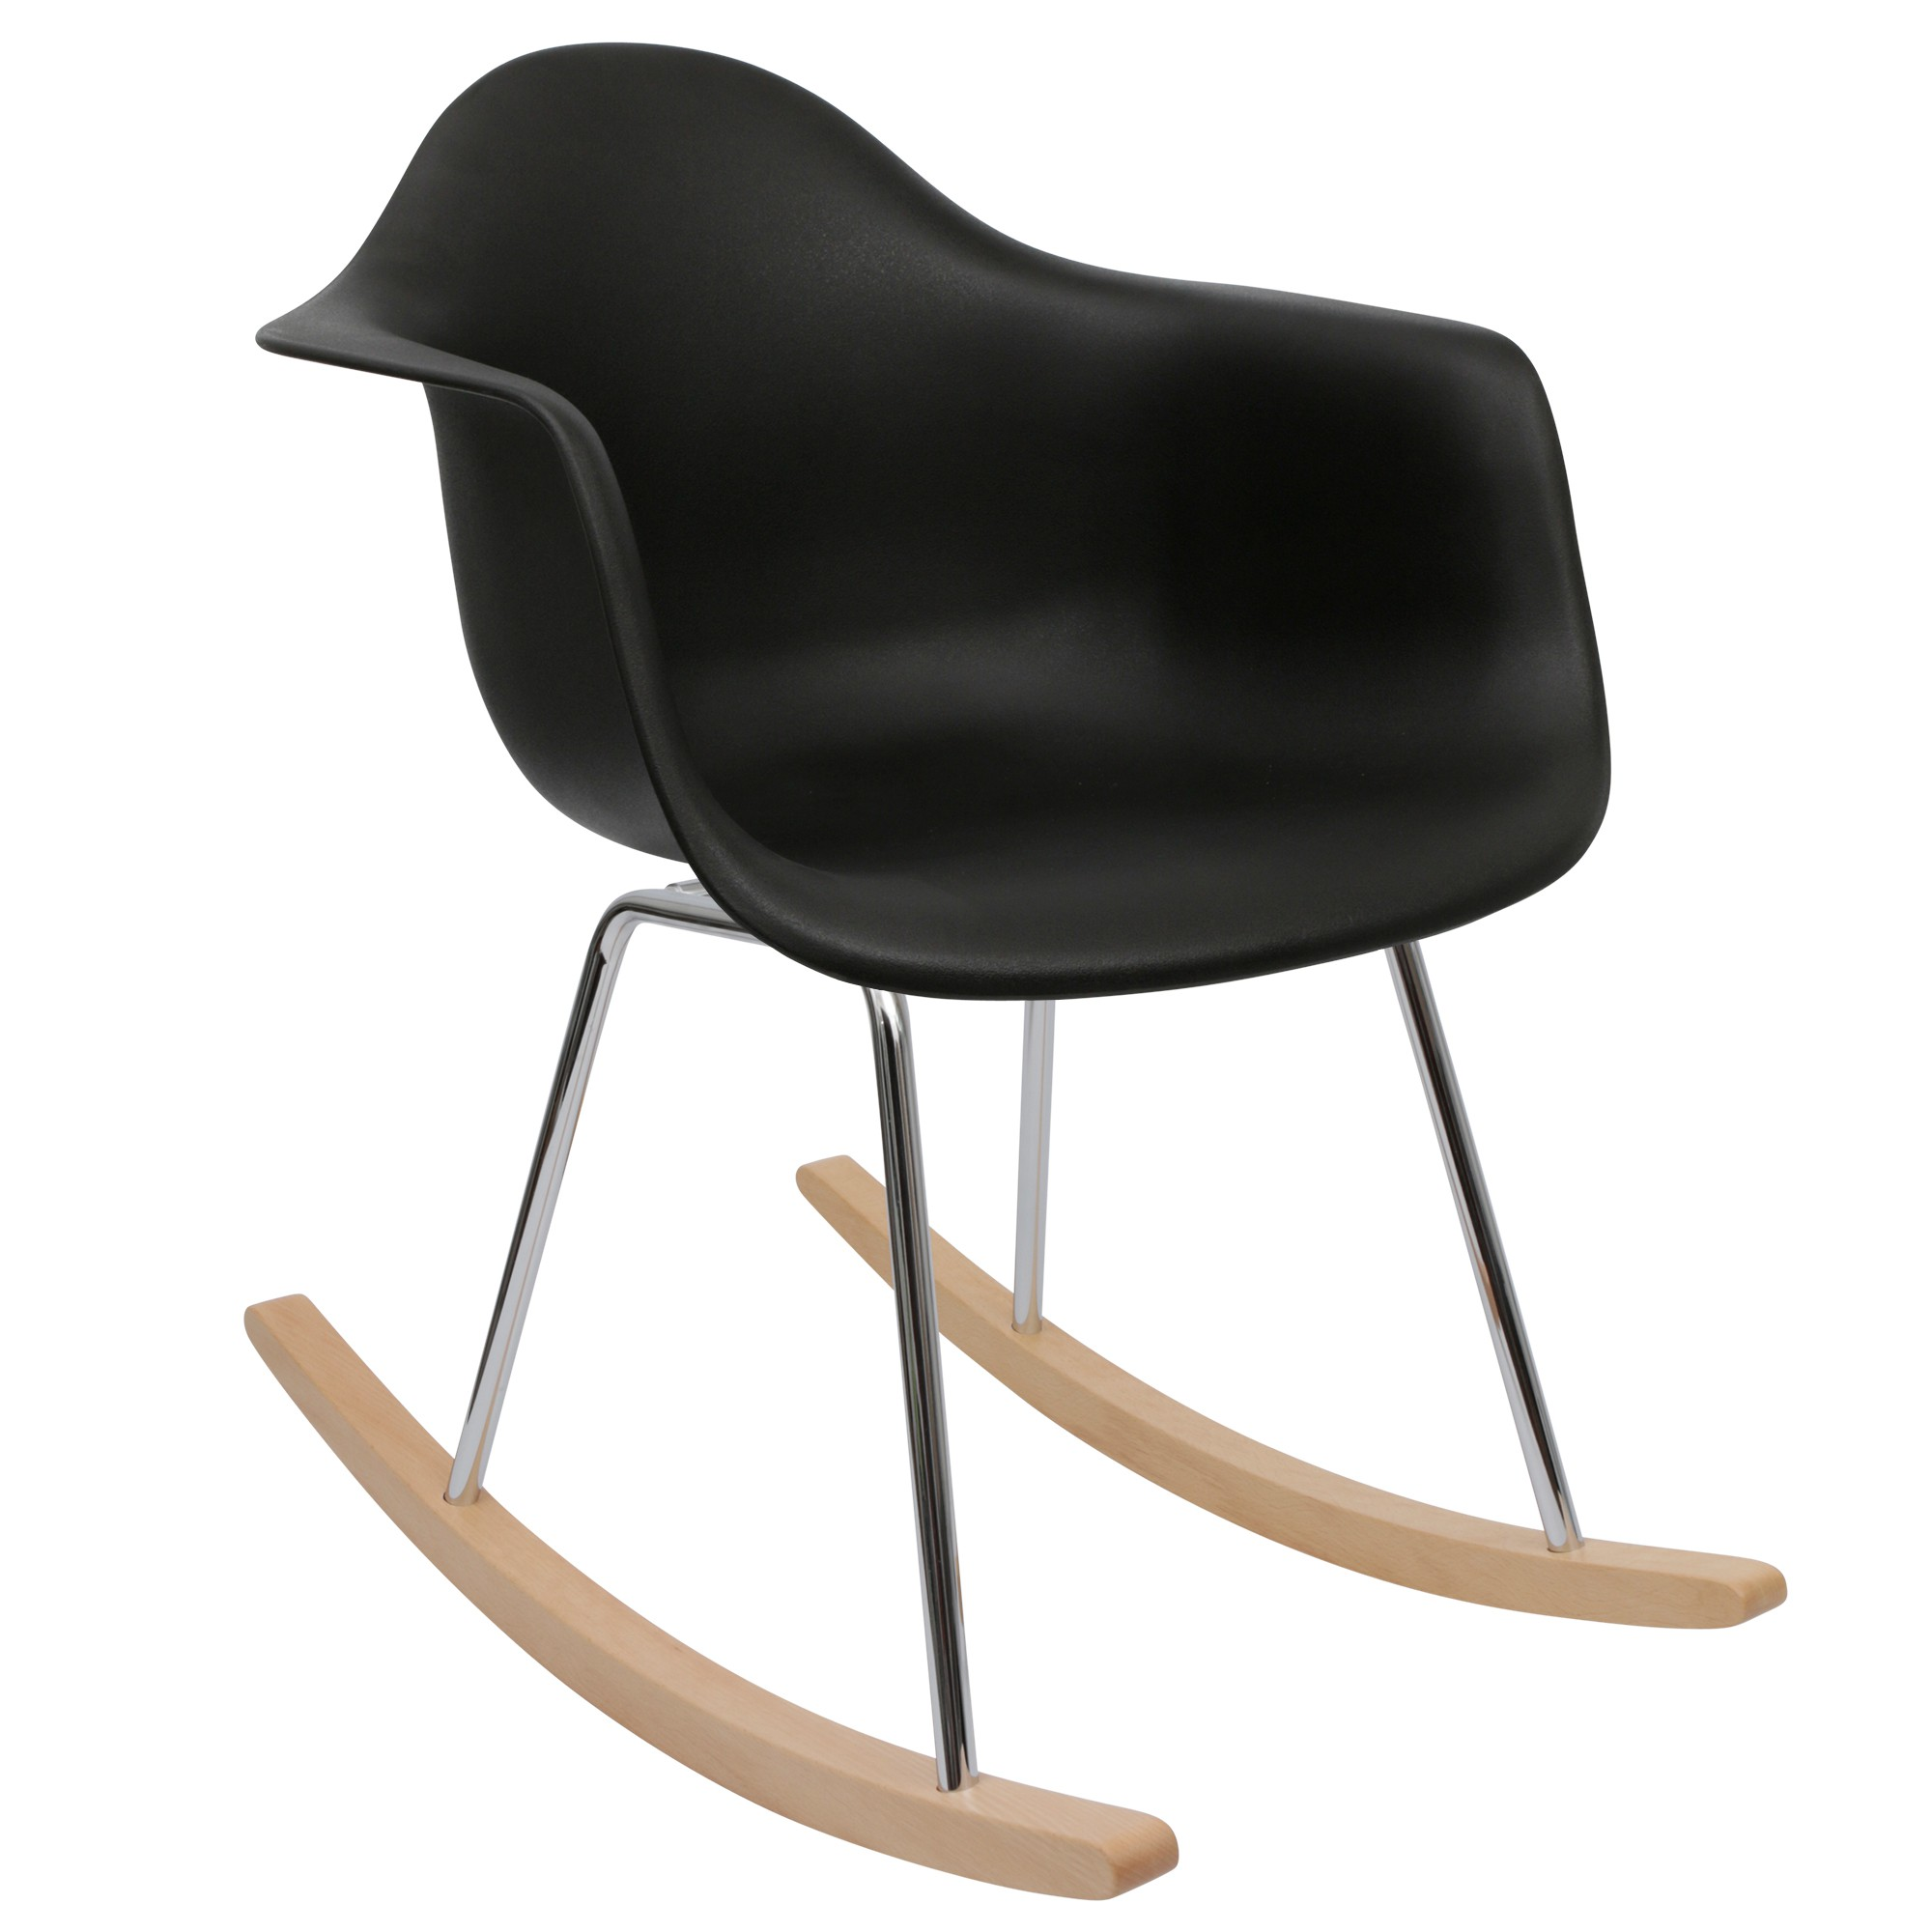 Chaise design rar rocking chair evo - Rocking chair confortable ...